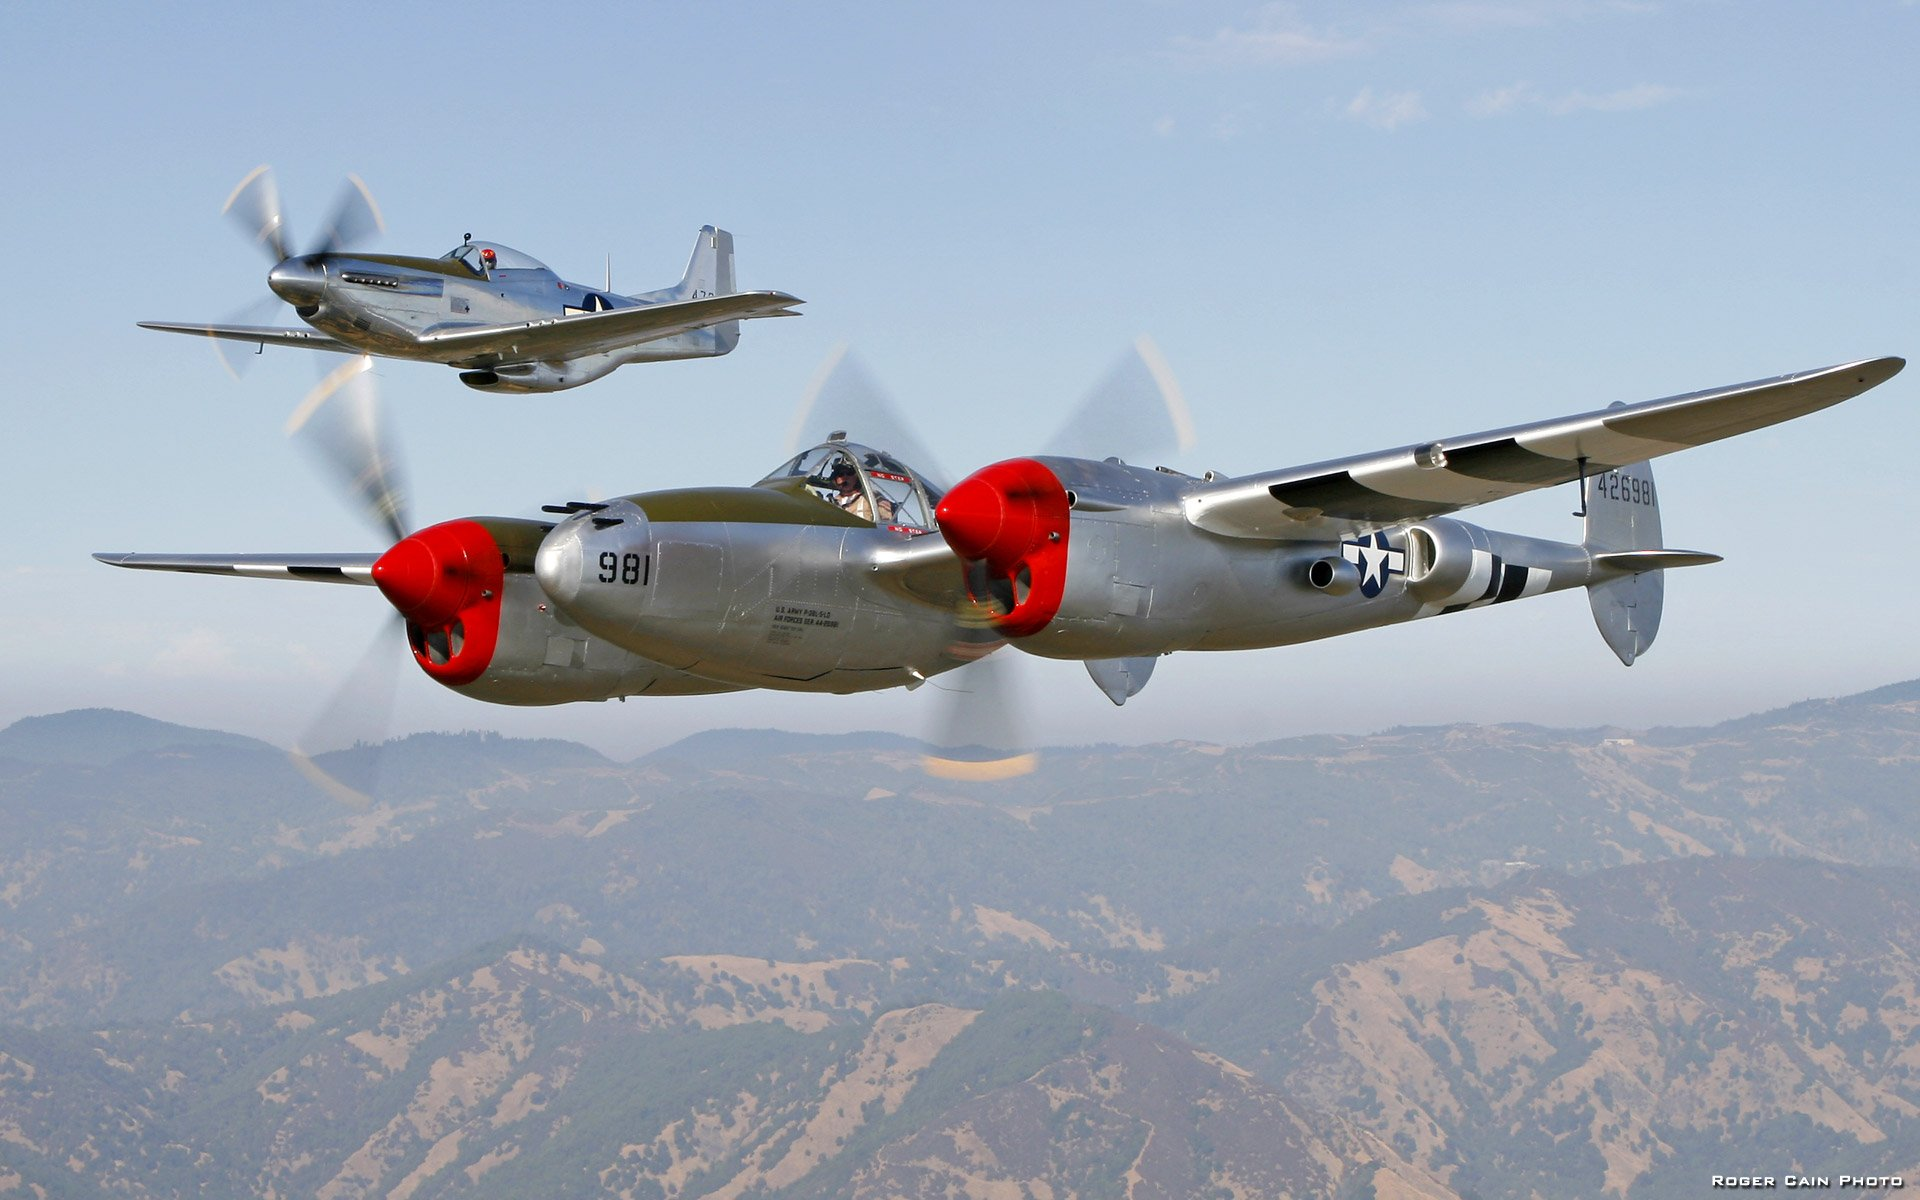 World War II P 38 Lightning P 51 Mustang wallpaper background 1920x1200